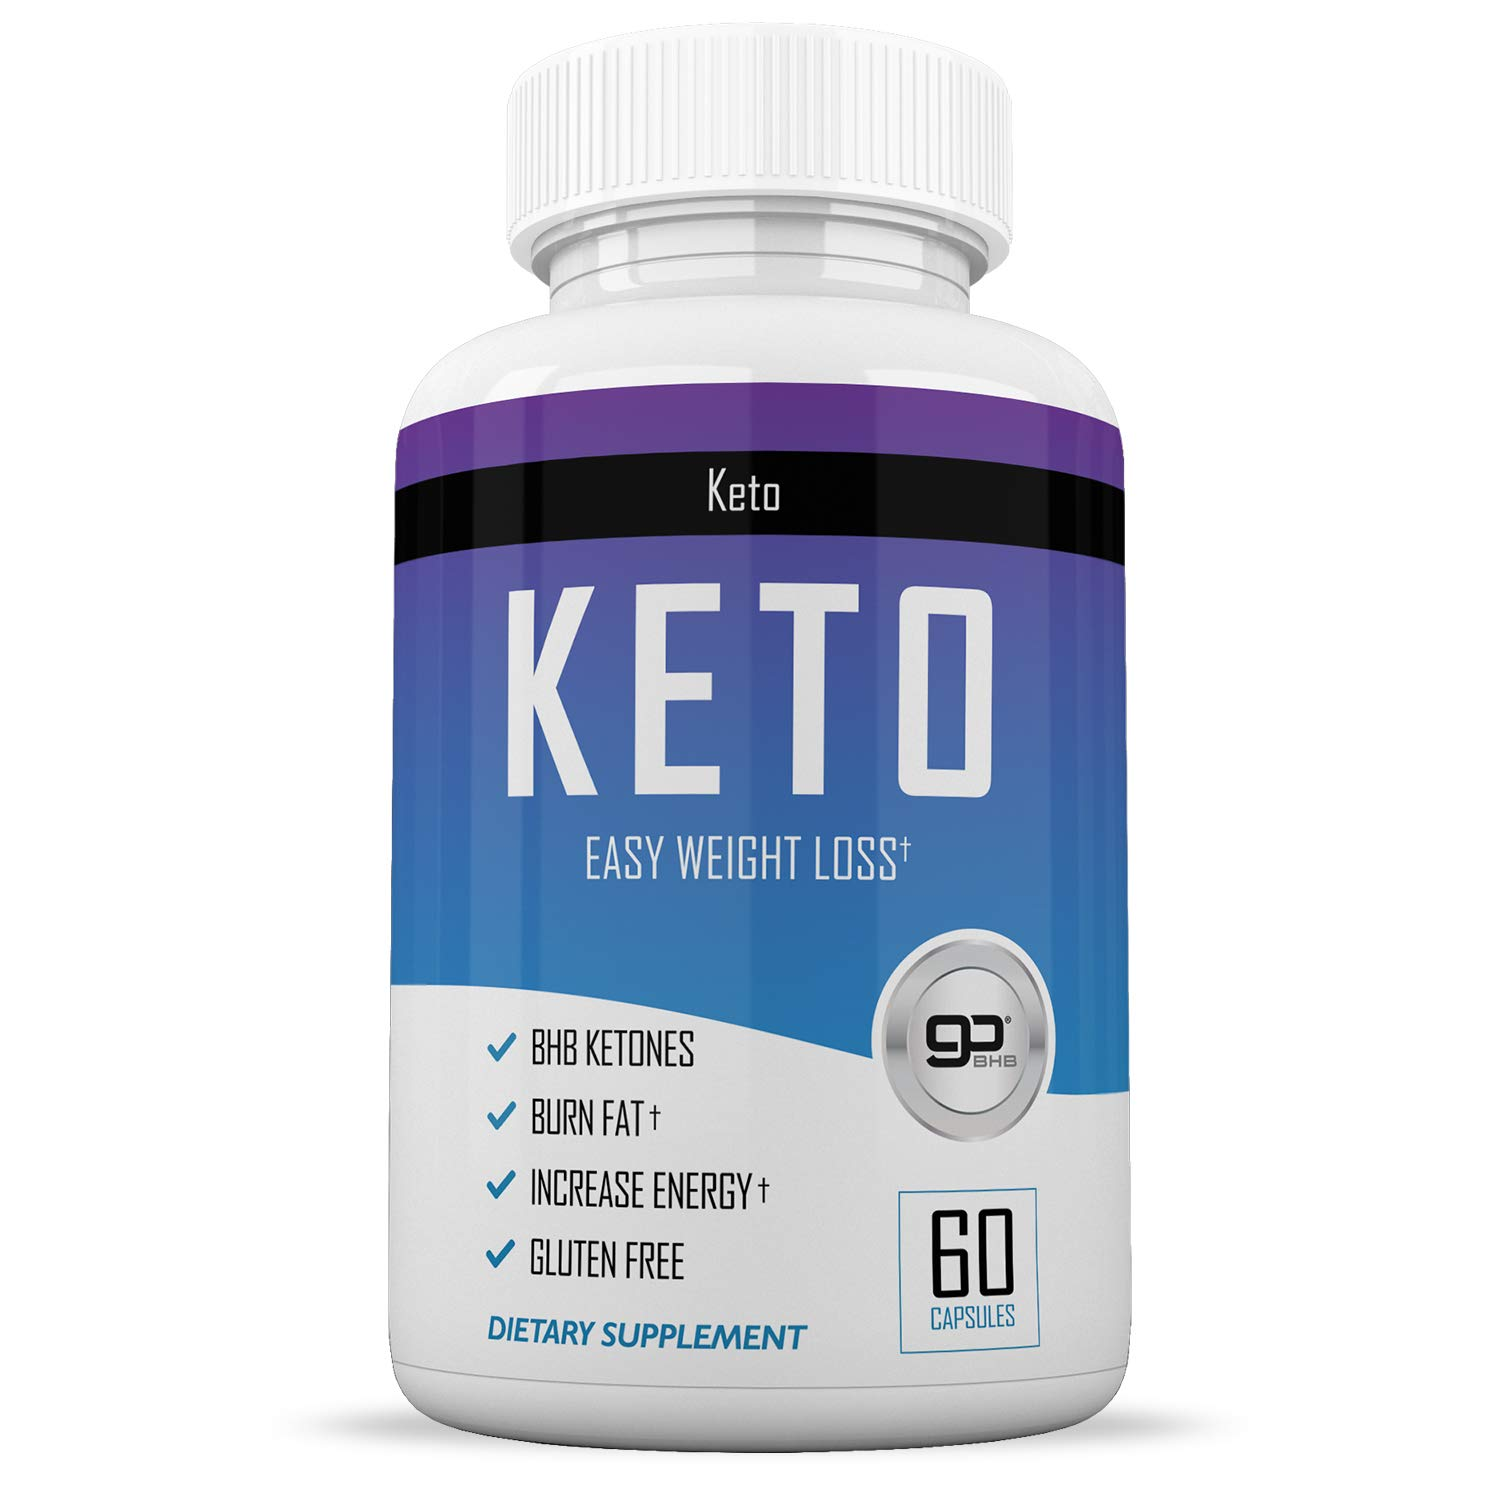 Keto Pills from Shark Tank - Weight Loss Supplement - Best Keto Diet Pills - Burns Fat Fast